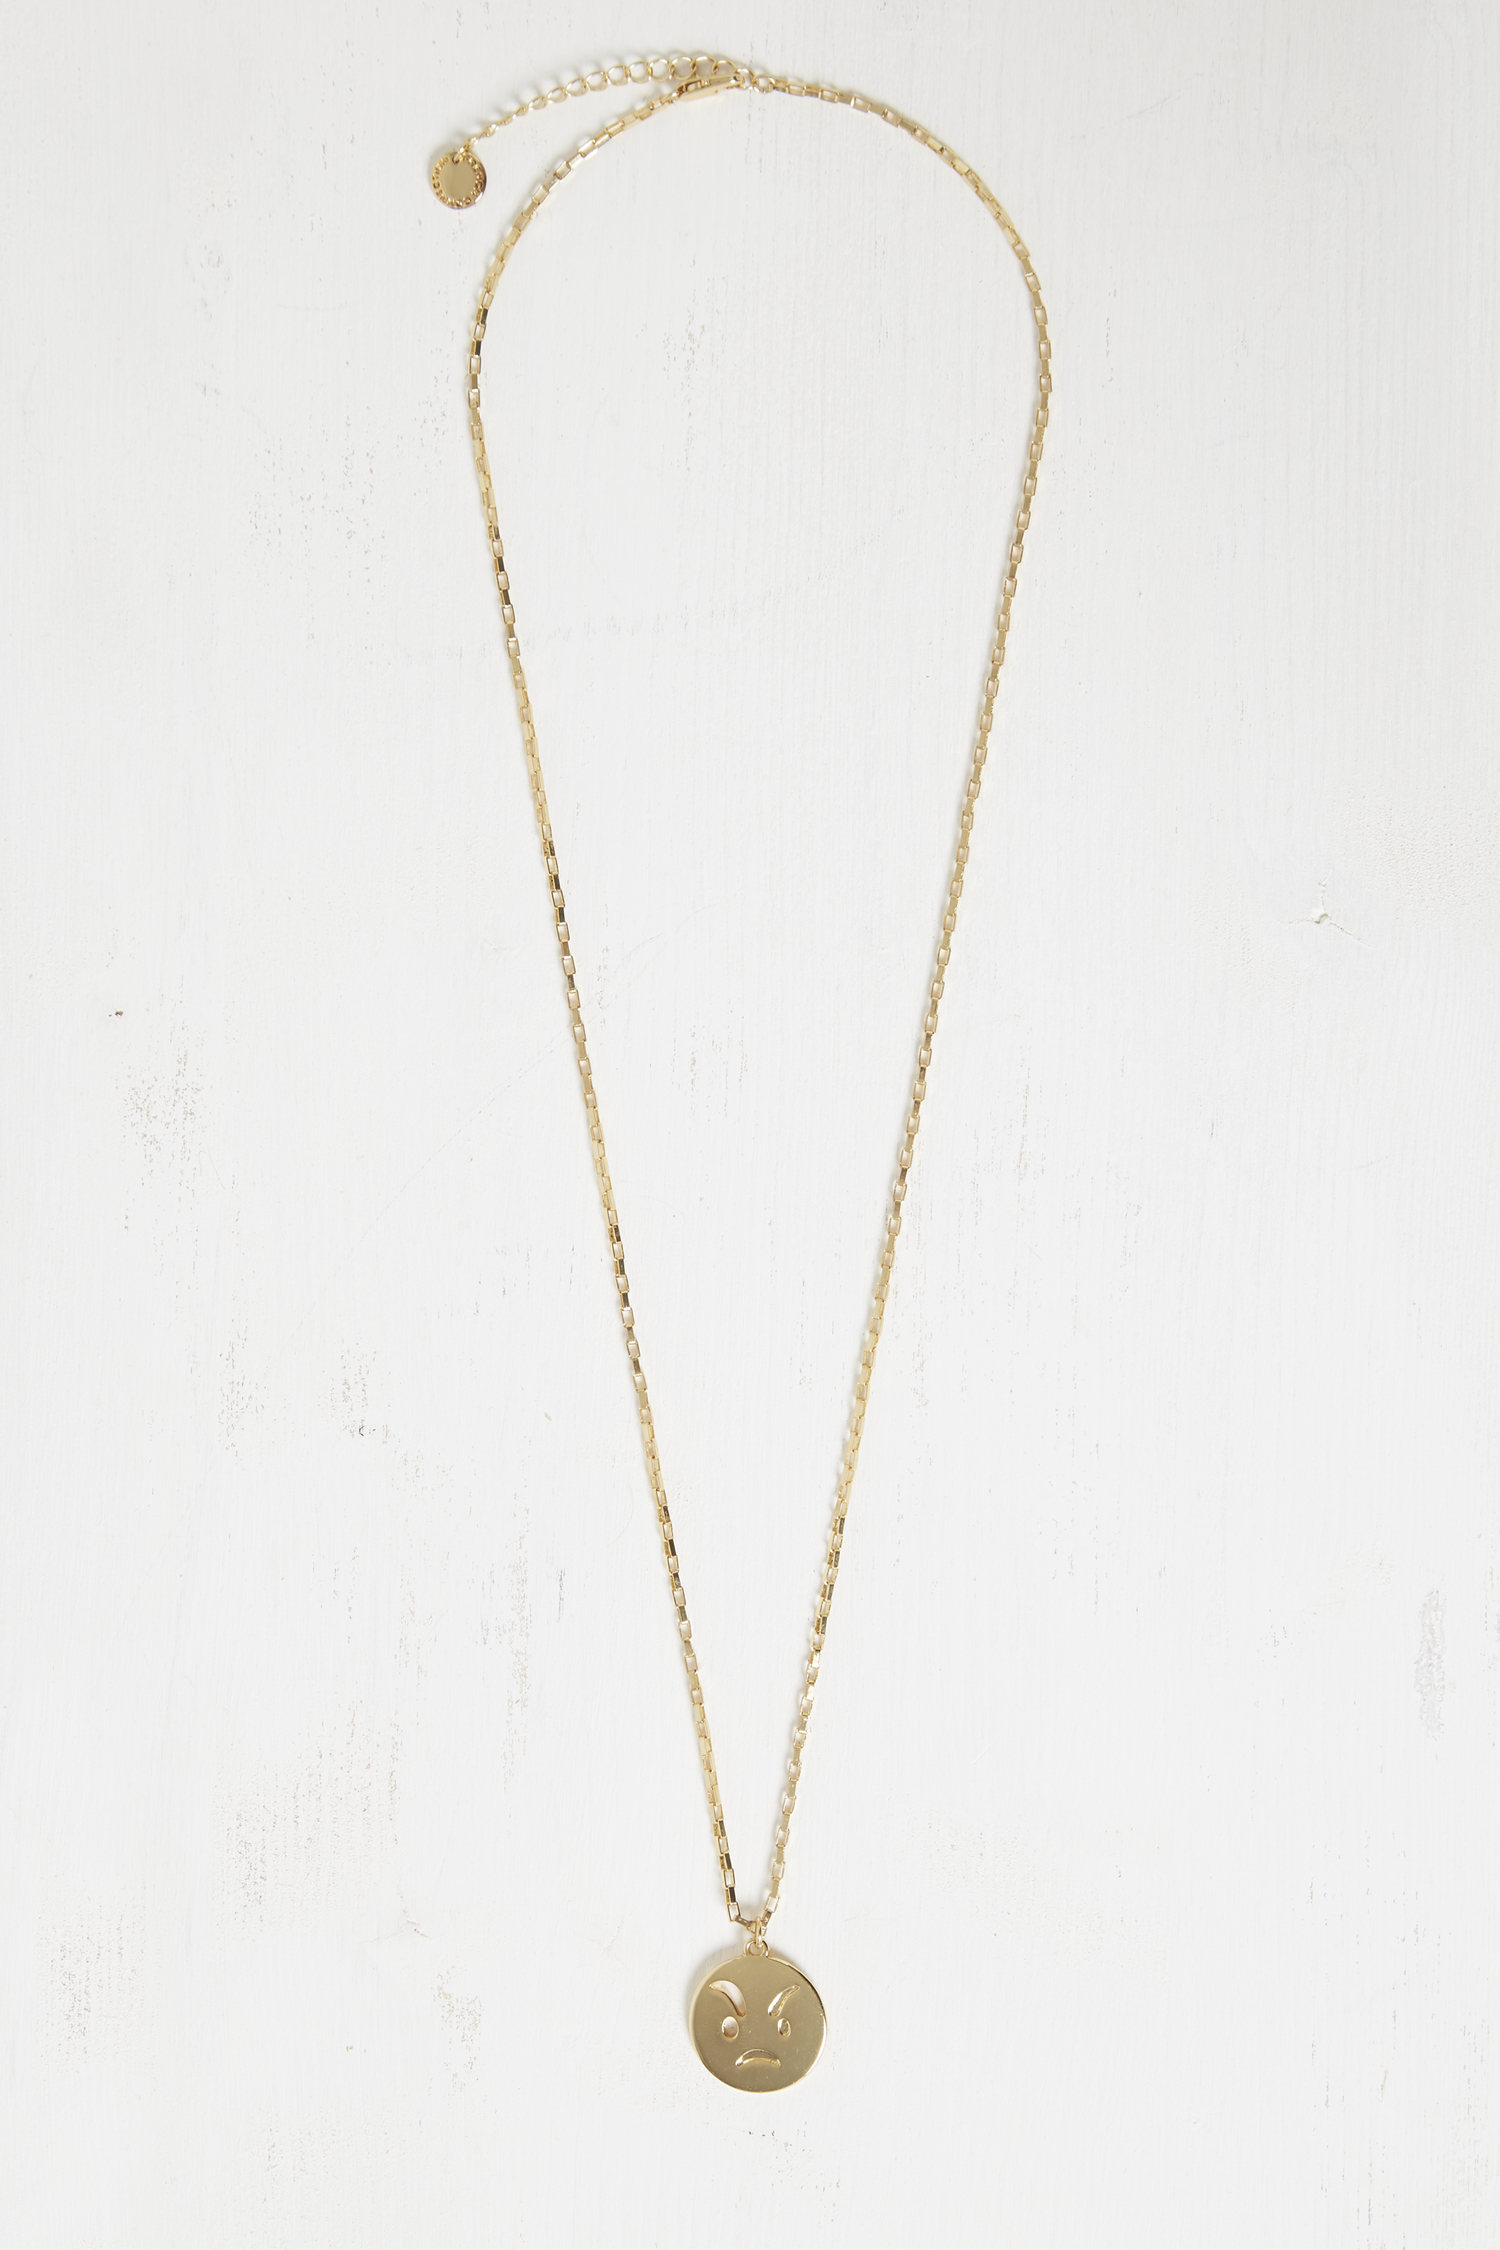 Chit Chat Sassy Necklace - gold